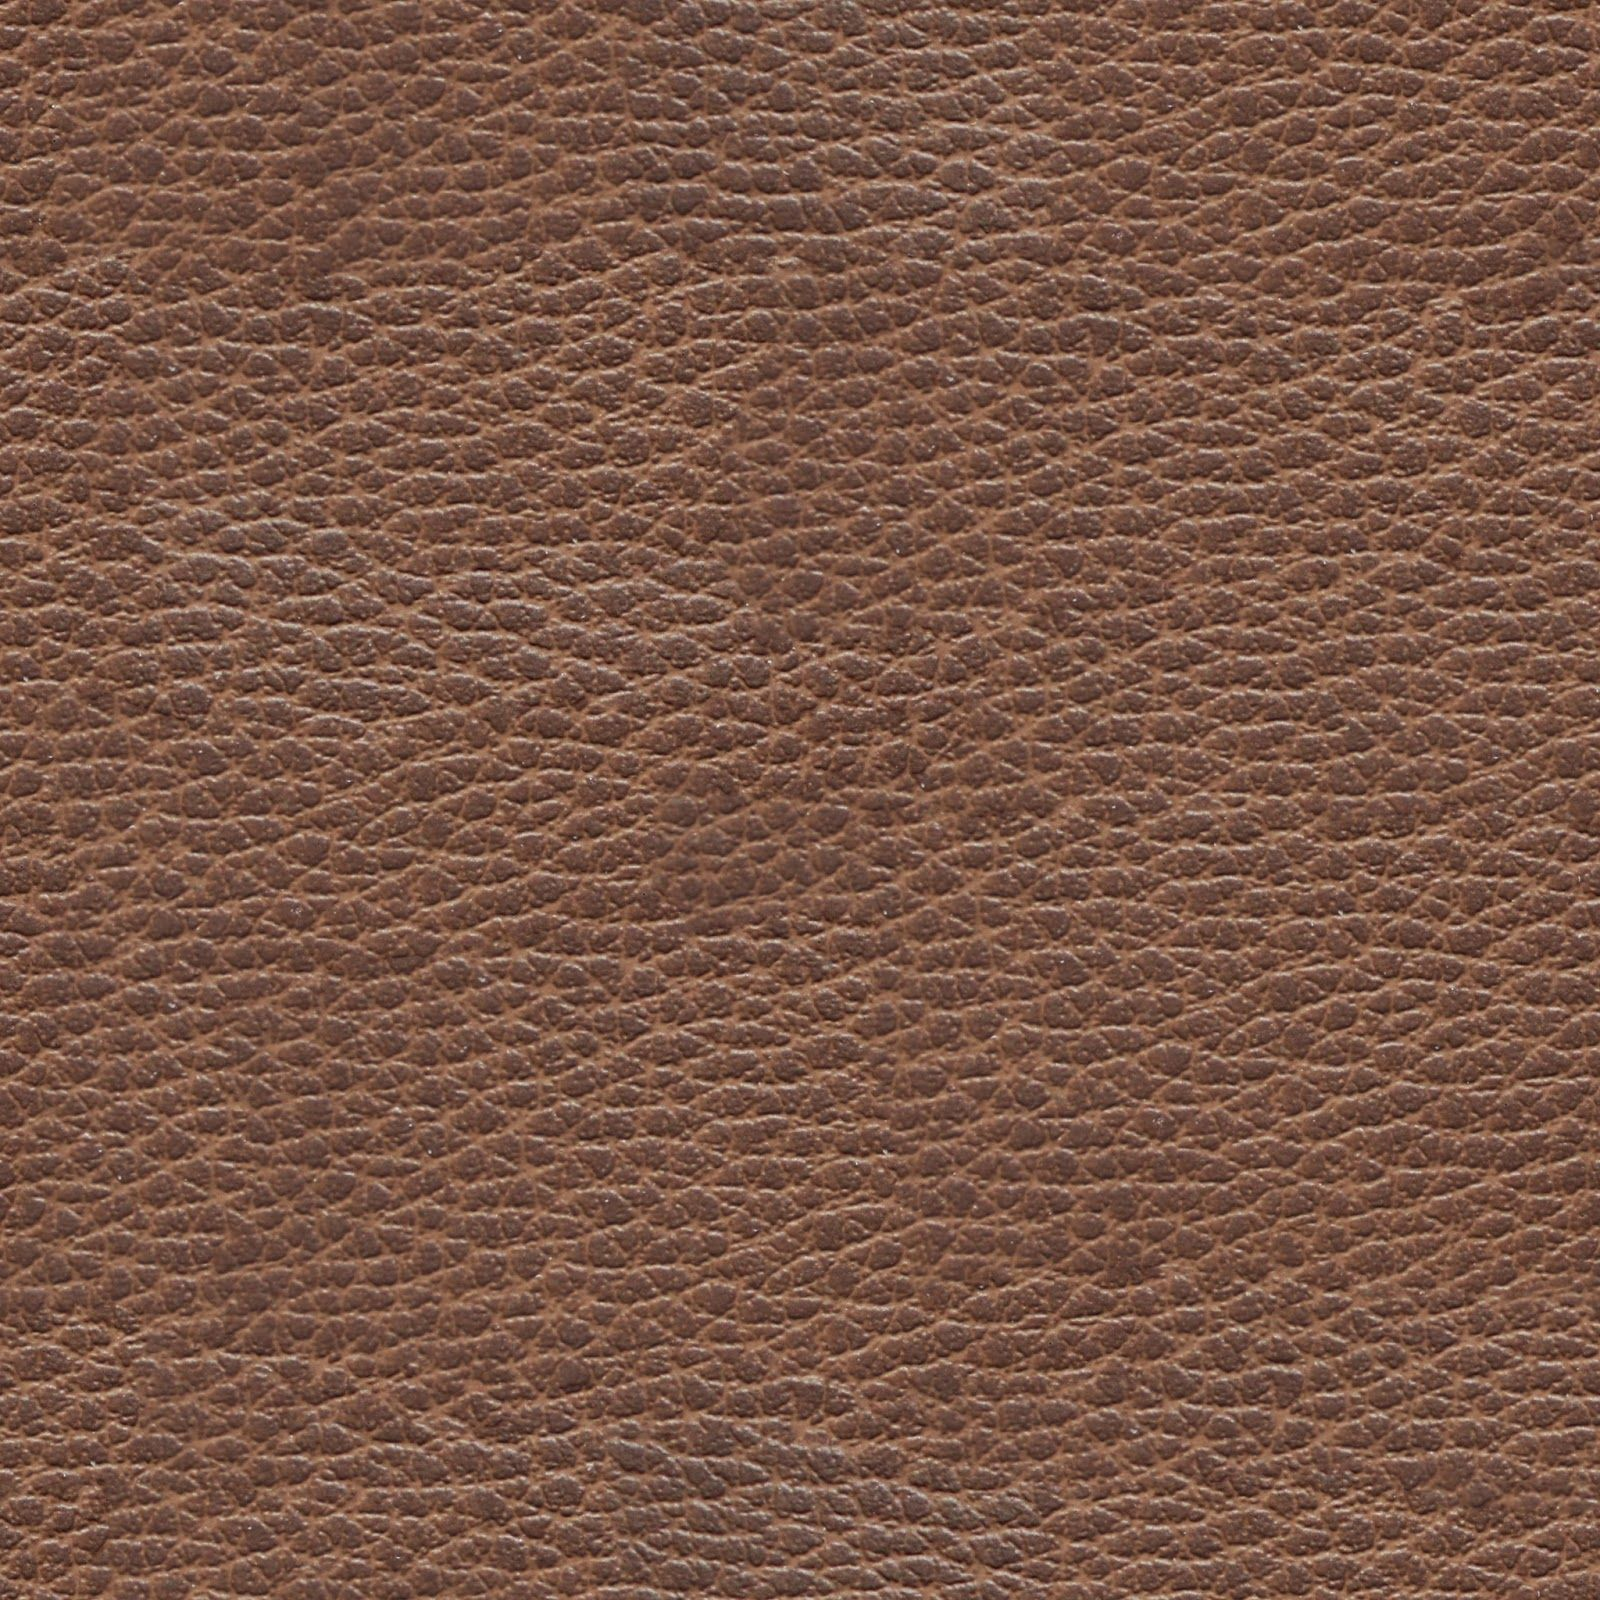 Seamless Brown Leather Texture Maps Texturise